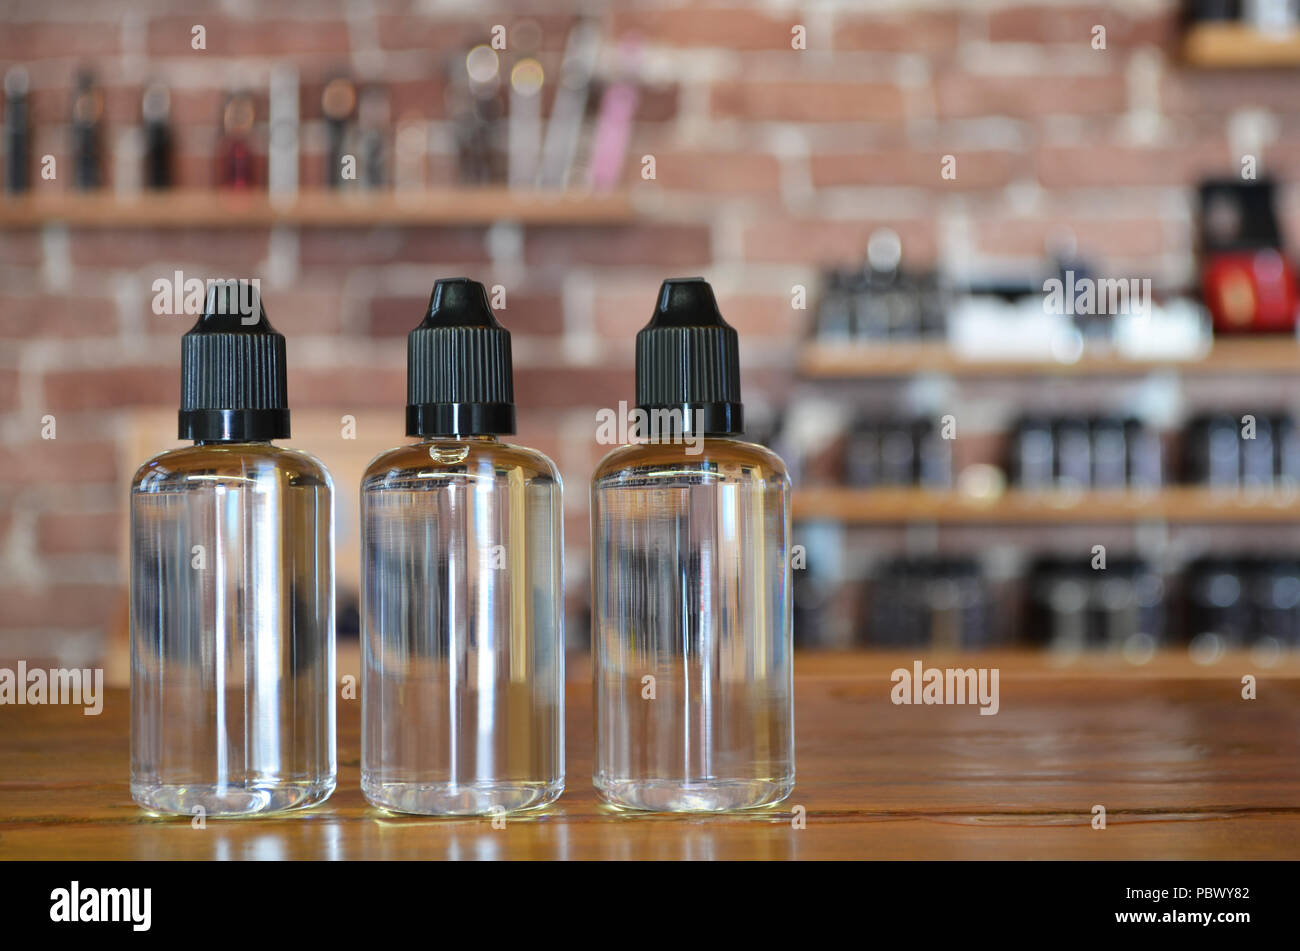 Vape juice bottle on a background of vape shop. E-cigarette for vaping. Popular vape devices - Stock Image